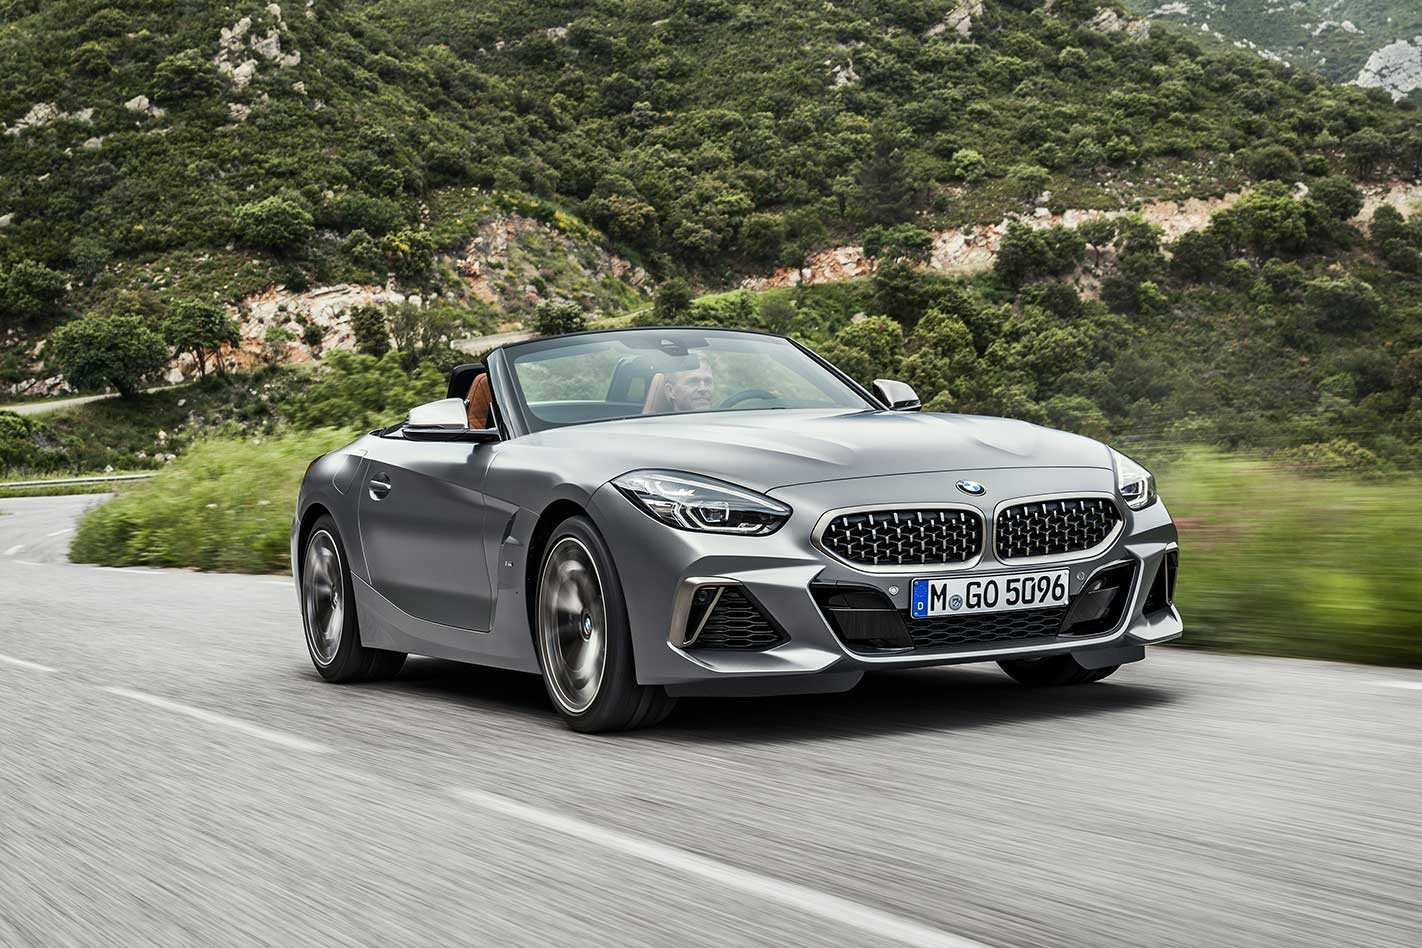 24 All New The Bmw 2019 Z4 Dimensions Specs And Review Configurations with The Bmw 2019 Z4 Dimensions Specs And Review